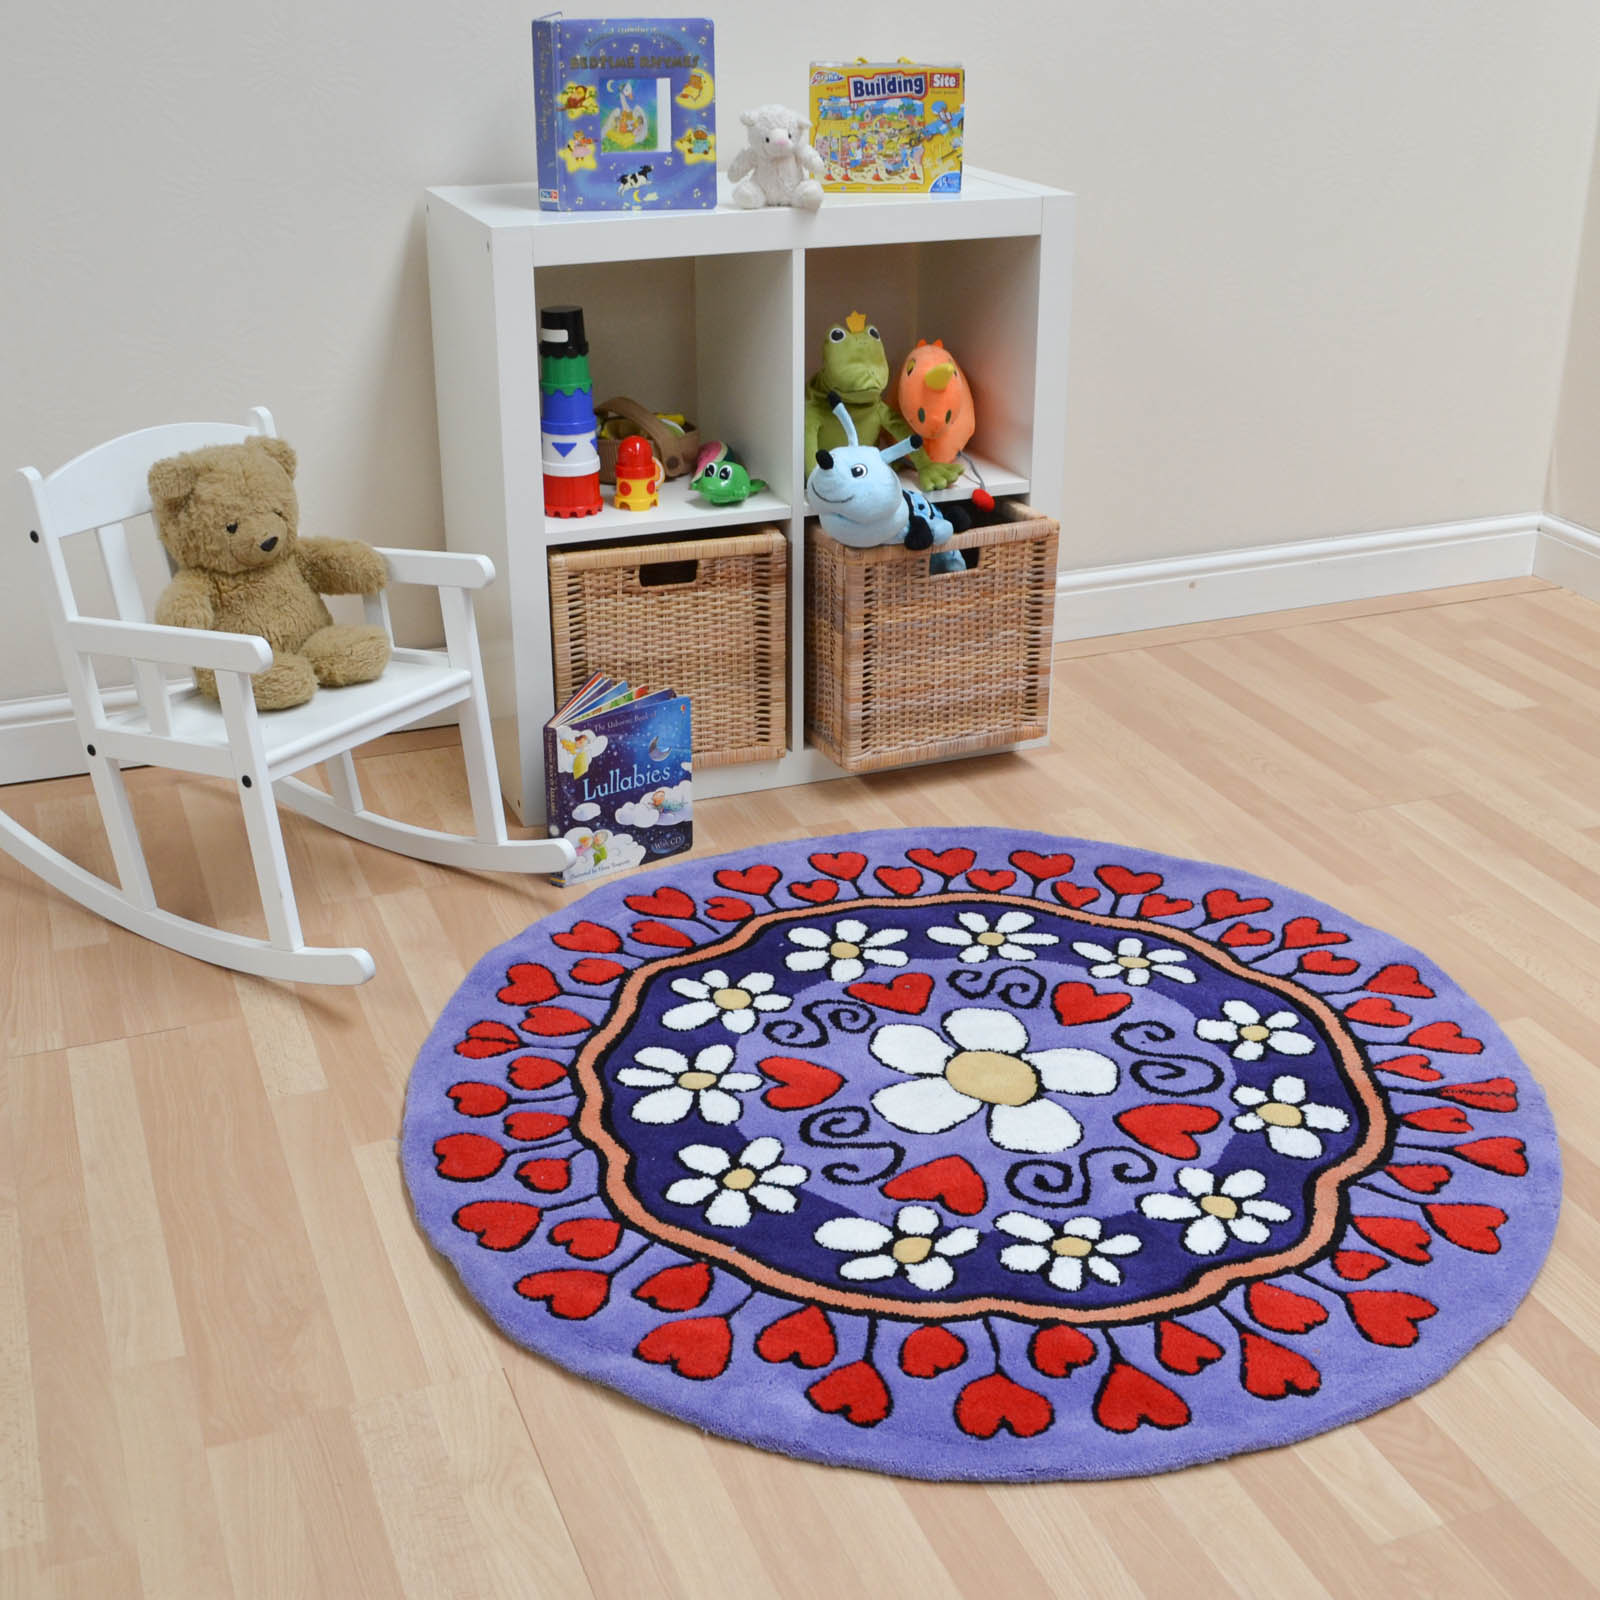 Kiddy Circle Rugs in Purple